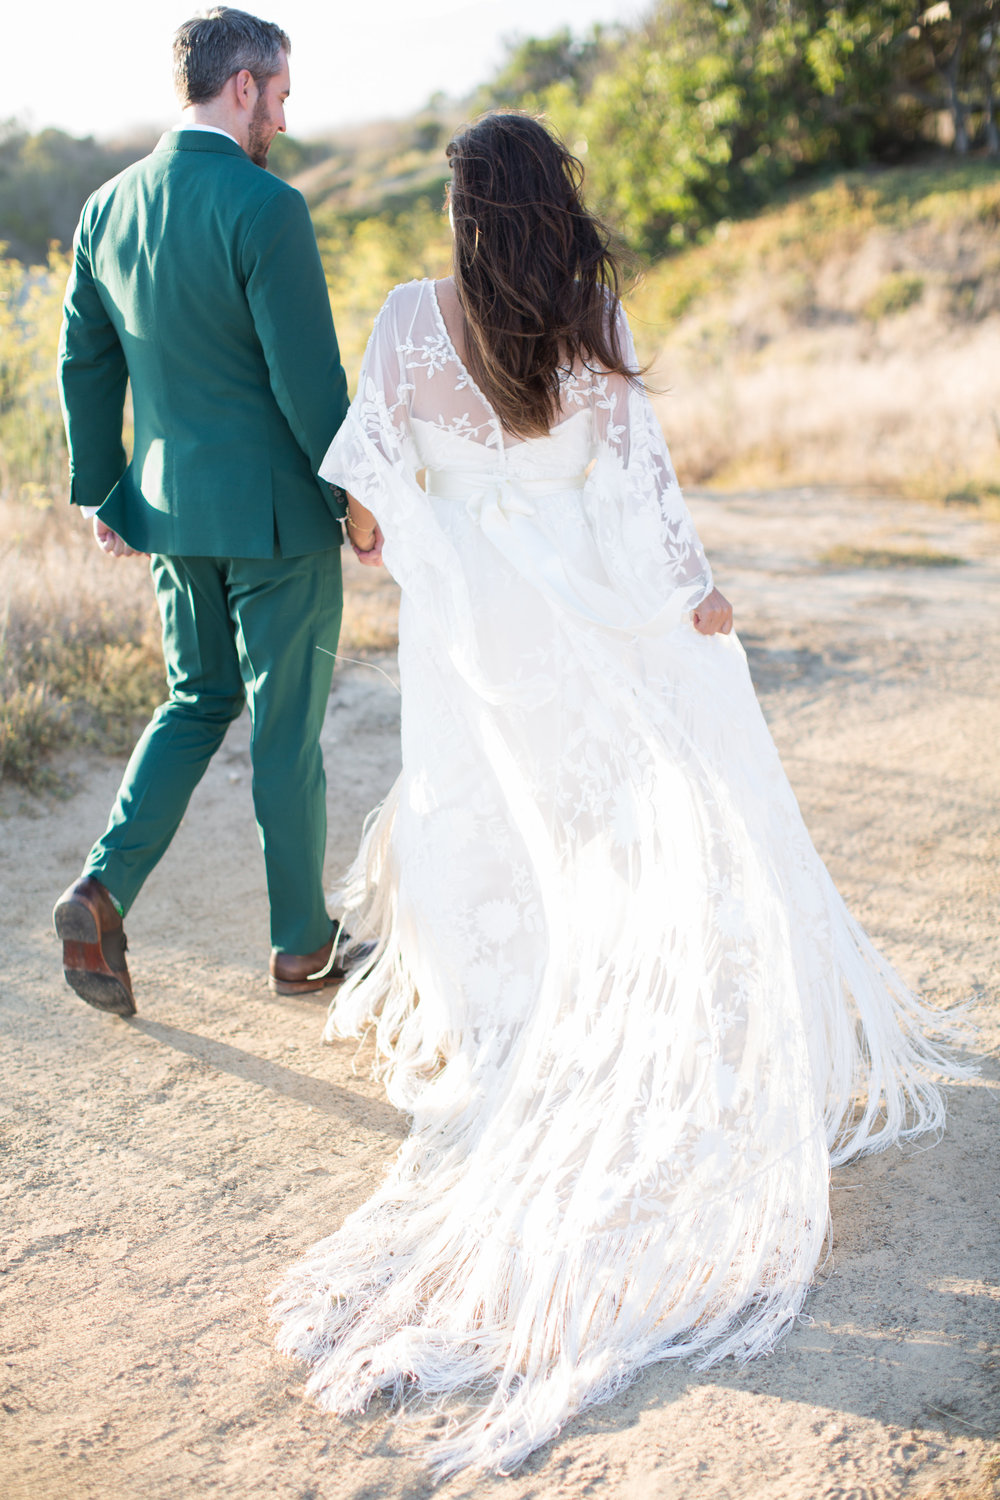 santa-barbara-elopement-elope-wedding-pop-up-coordinator-day-of-event-planning-planner-ellwood-bluff-eucalyptus-grove-rustic-ocean-view-front-hop-green-suit (1 (17).jpg